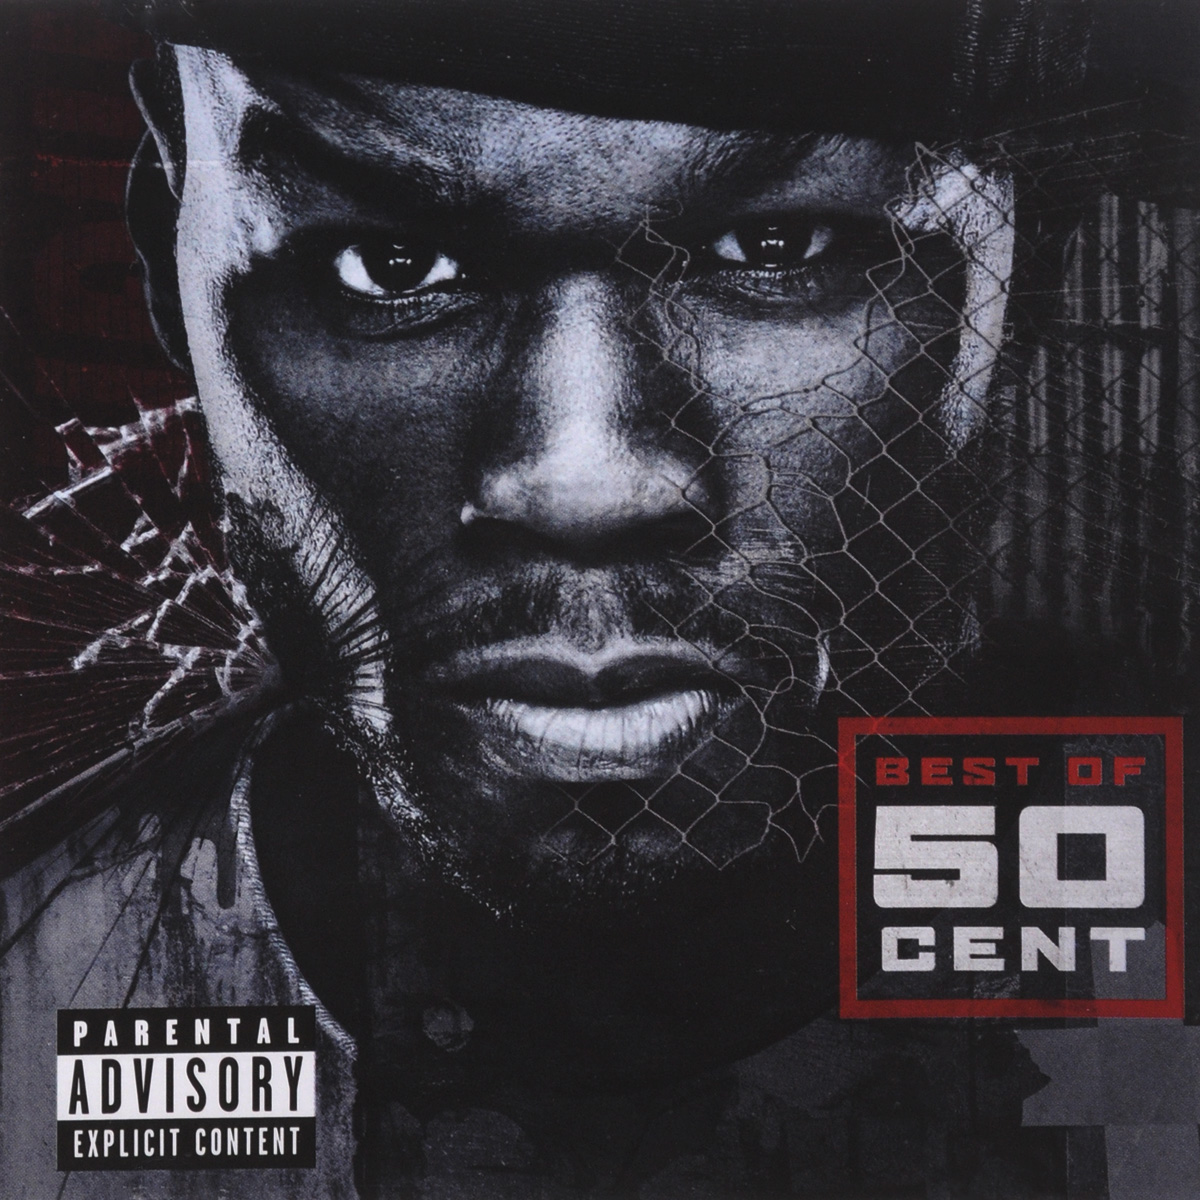 50 Cent 50 Cent. Best Of 50 Cent 50 cent london